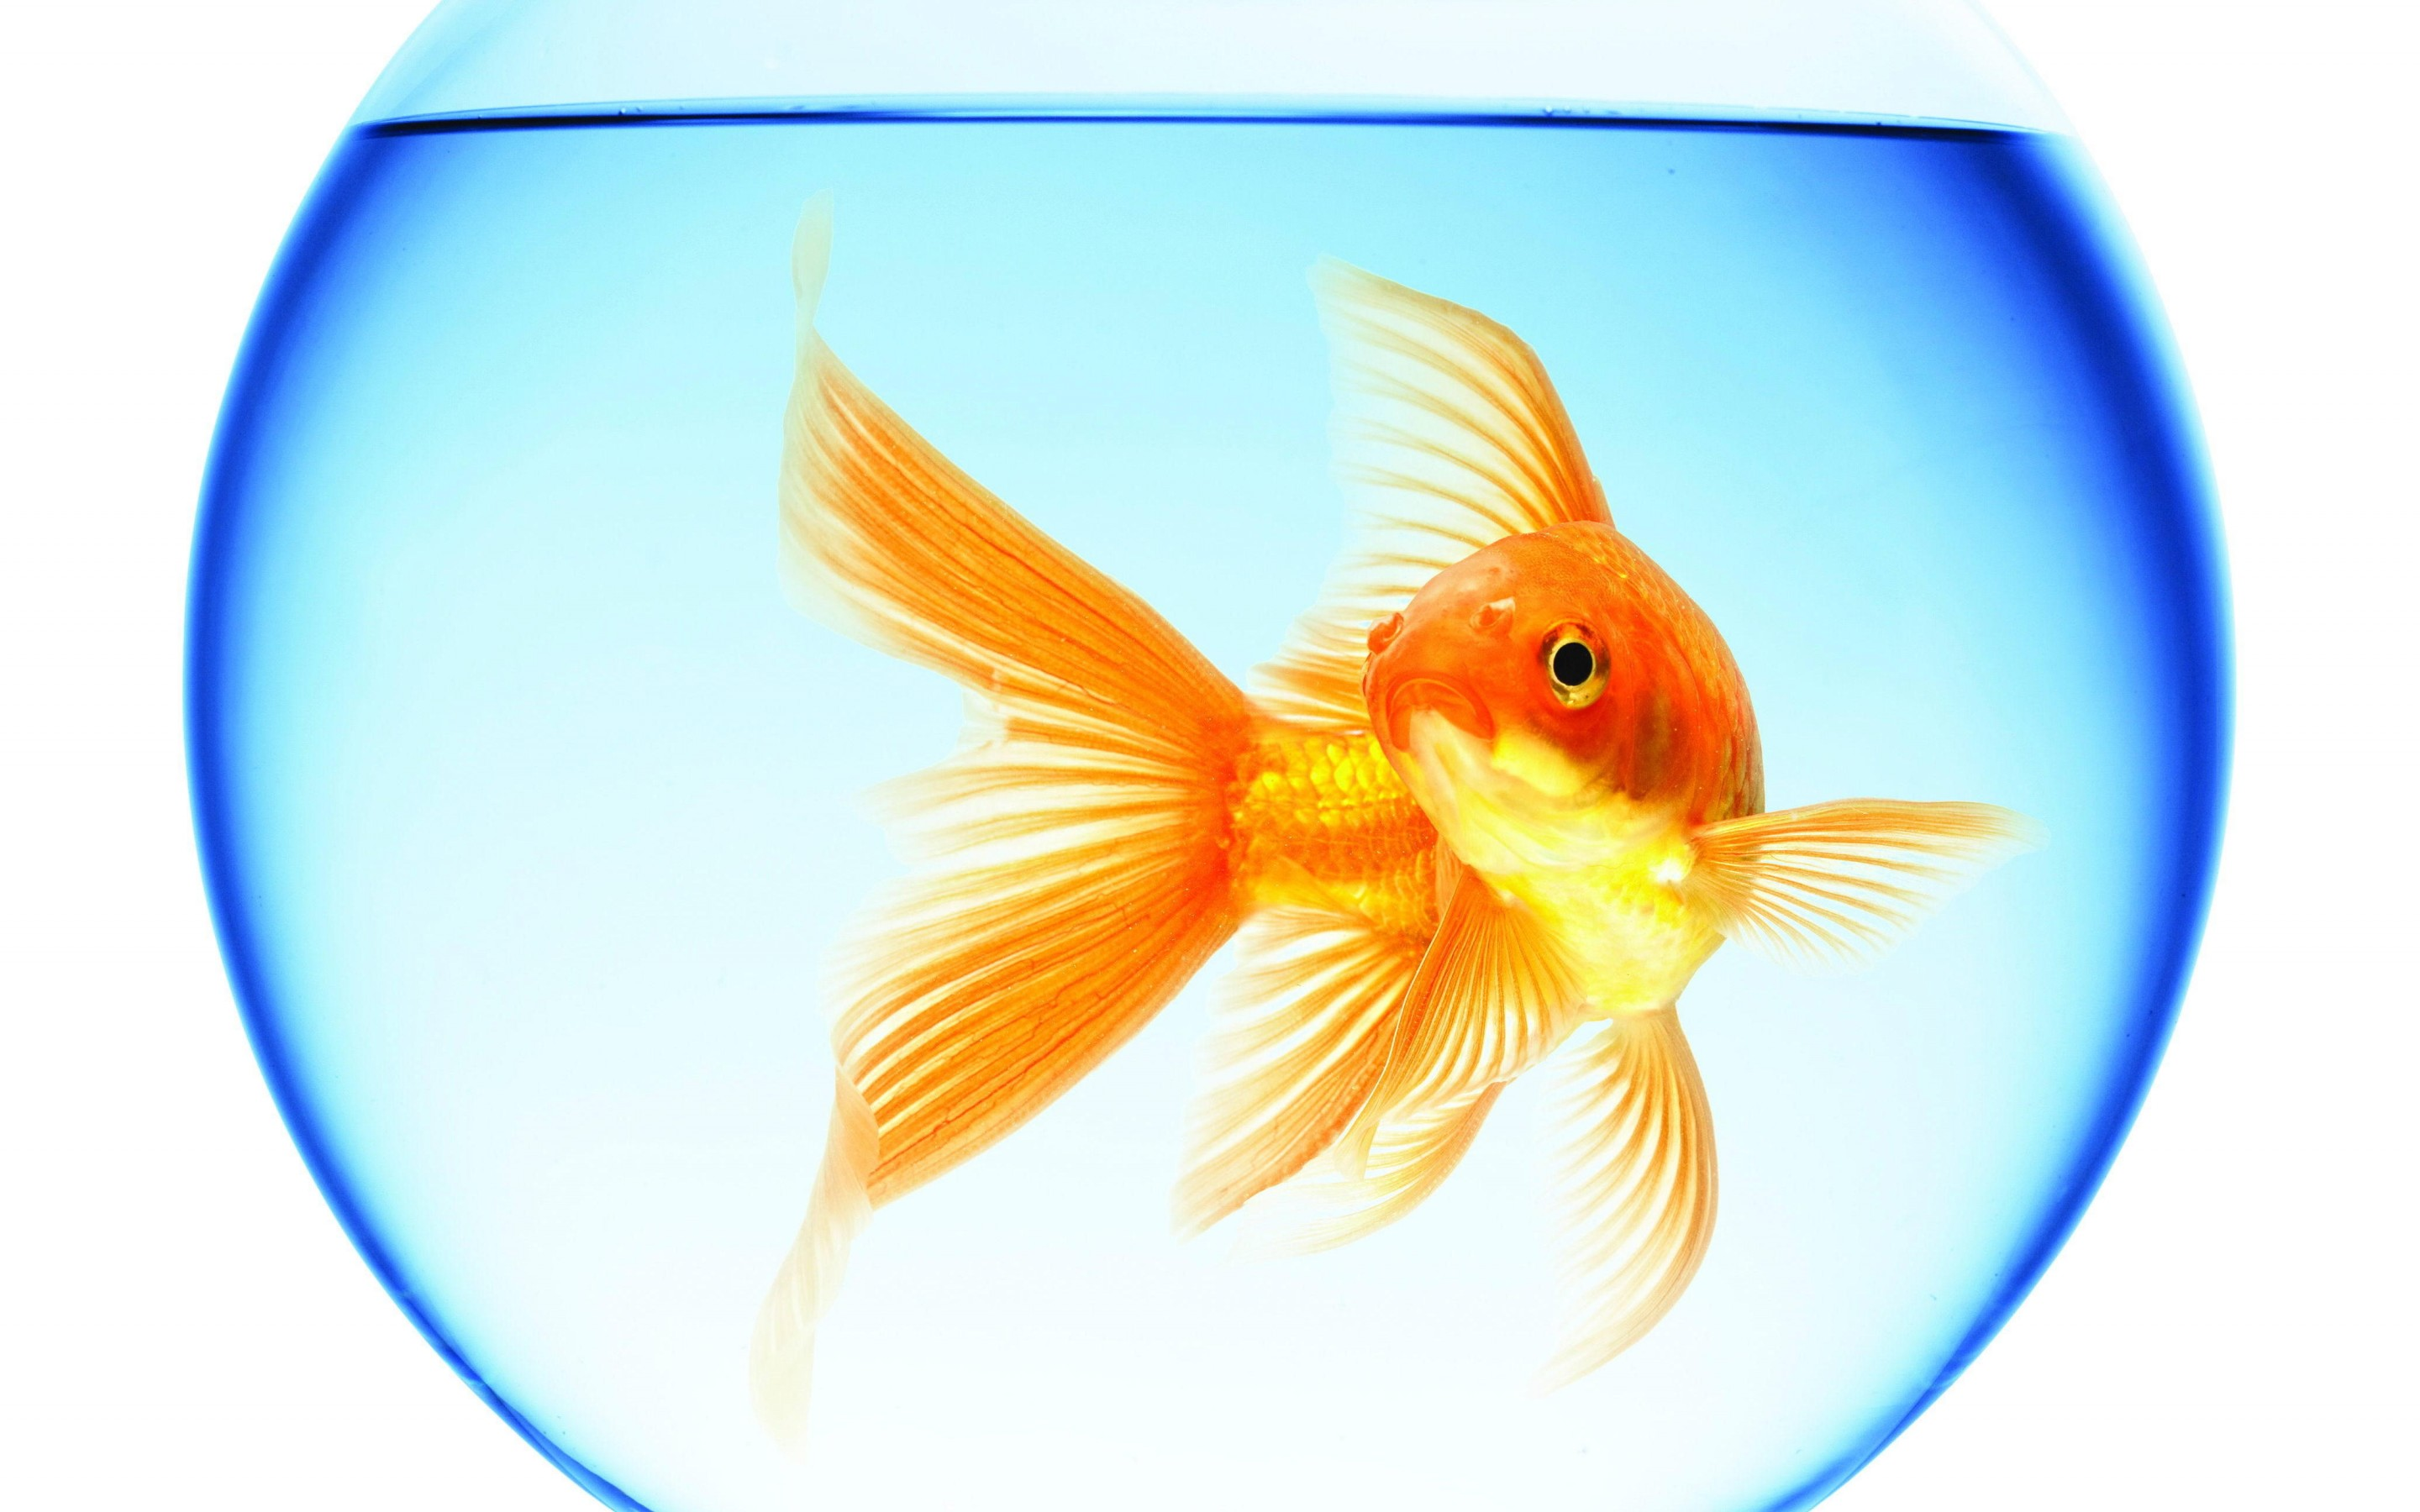 goldfish swimming aquarium round water reflection white background 2880x1800